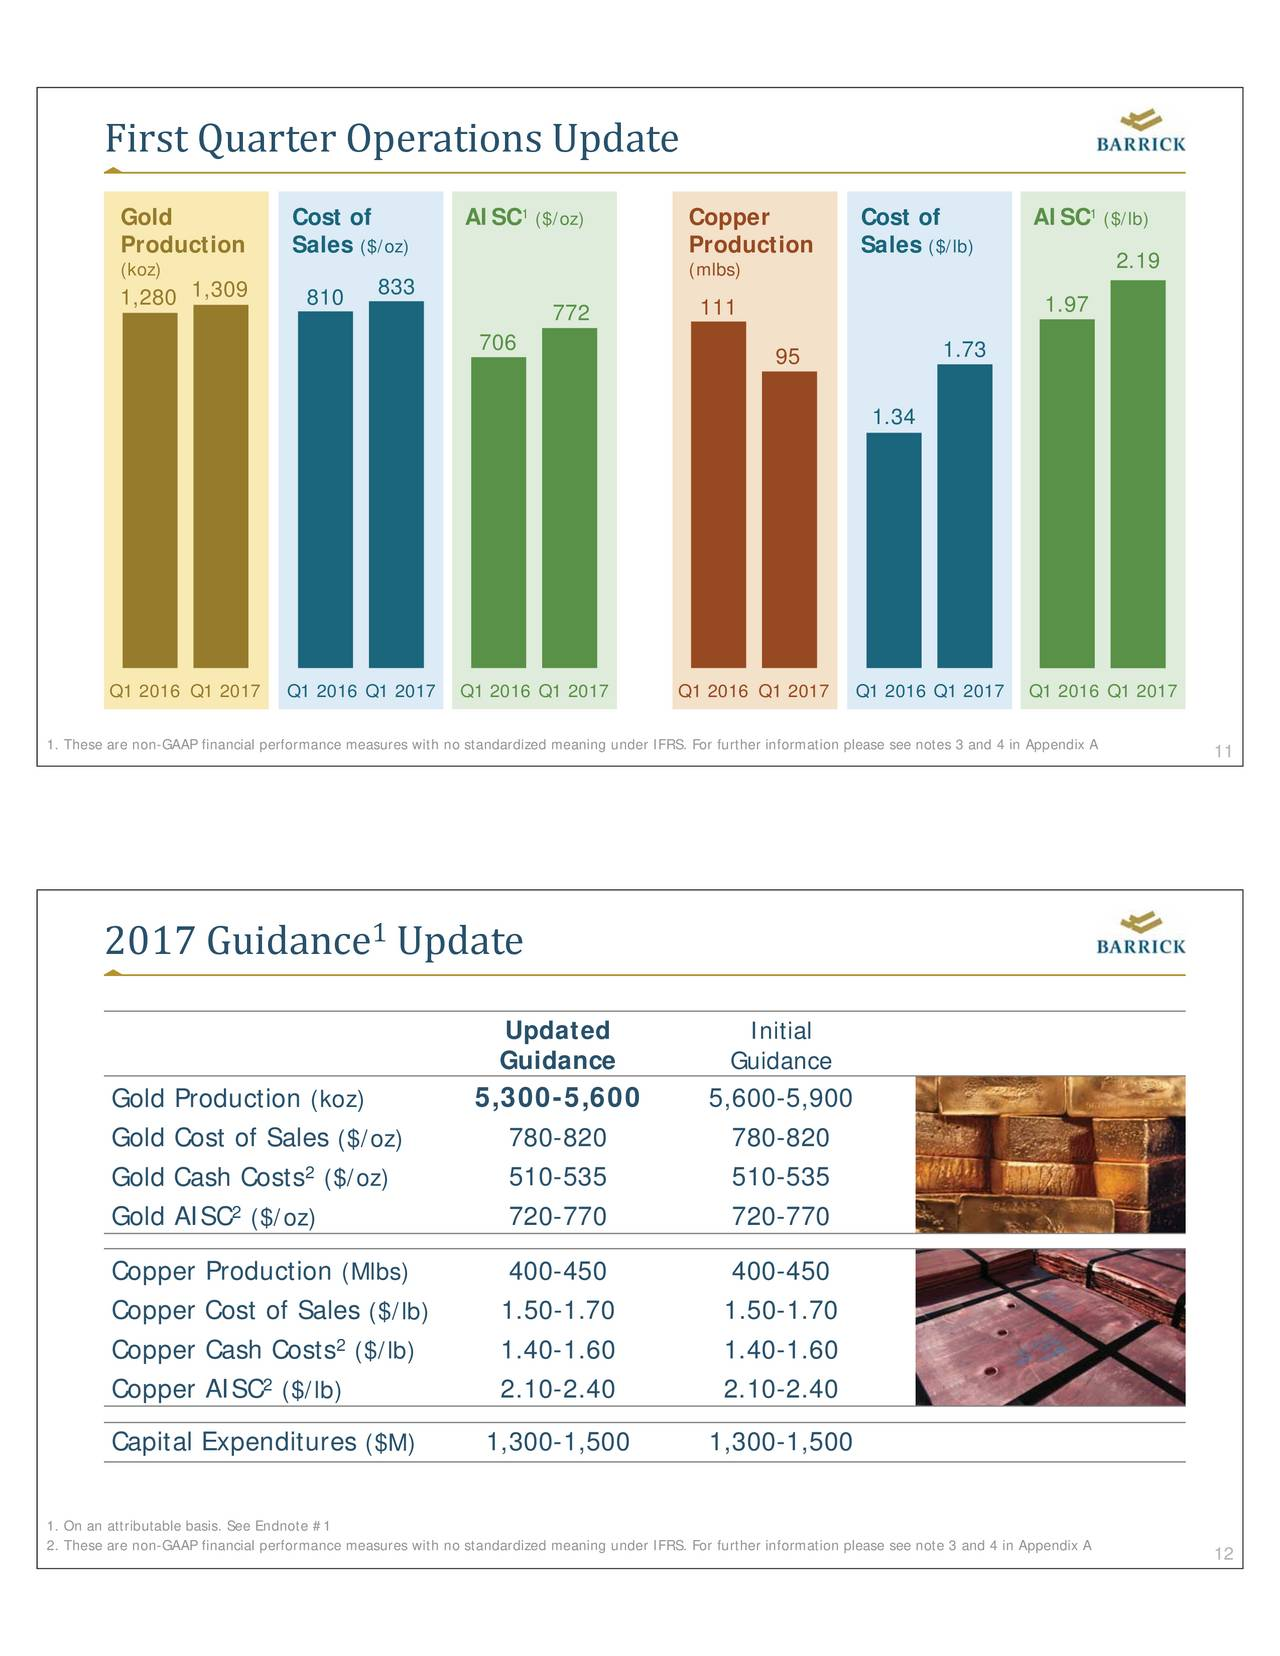 barrick gold corporation Barrick gold corporation is an international gold company with operating mines and development projects in the united states, canada, south america, australia, and africa address brookfield pl.